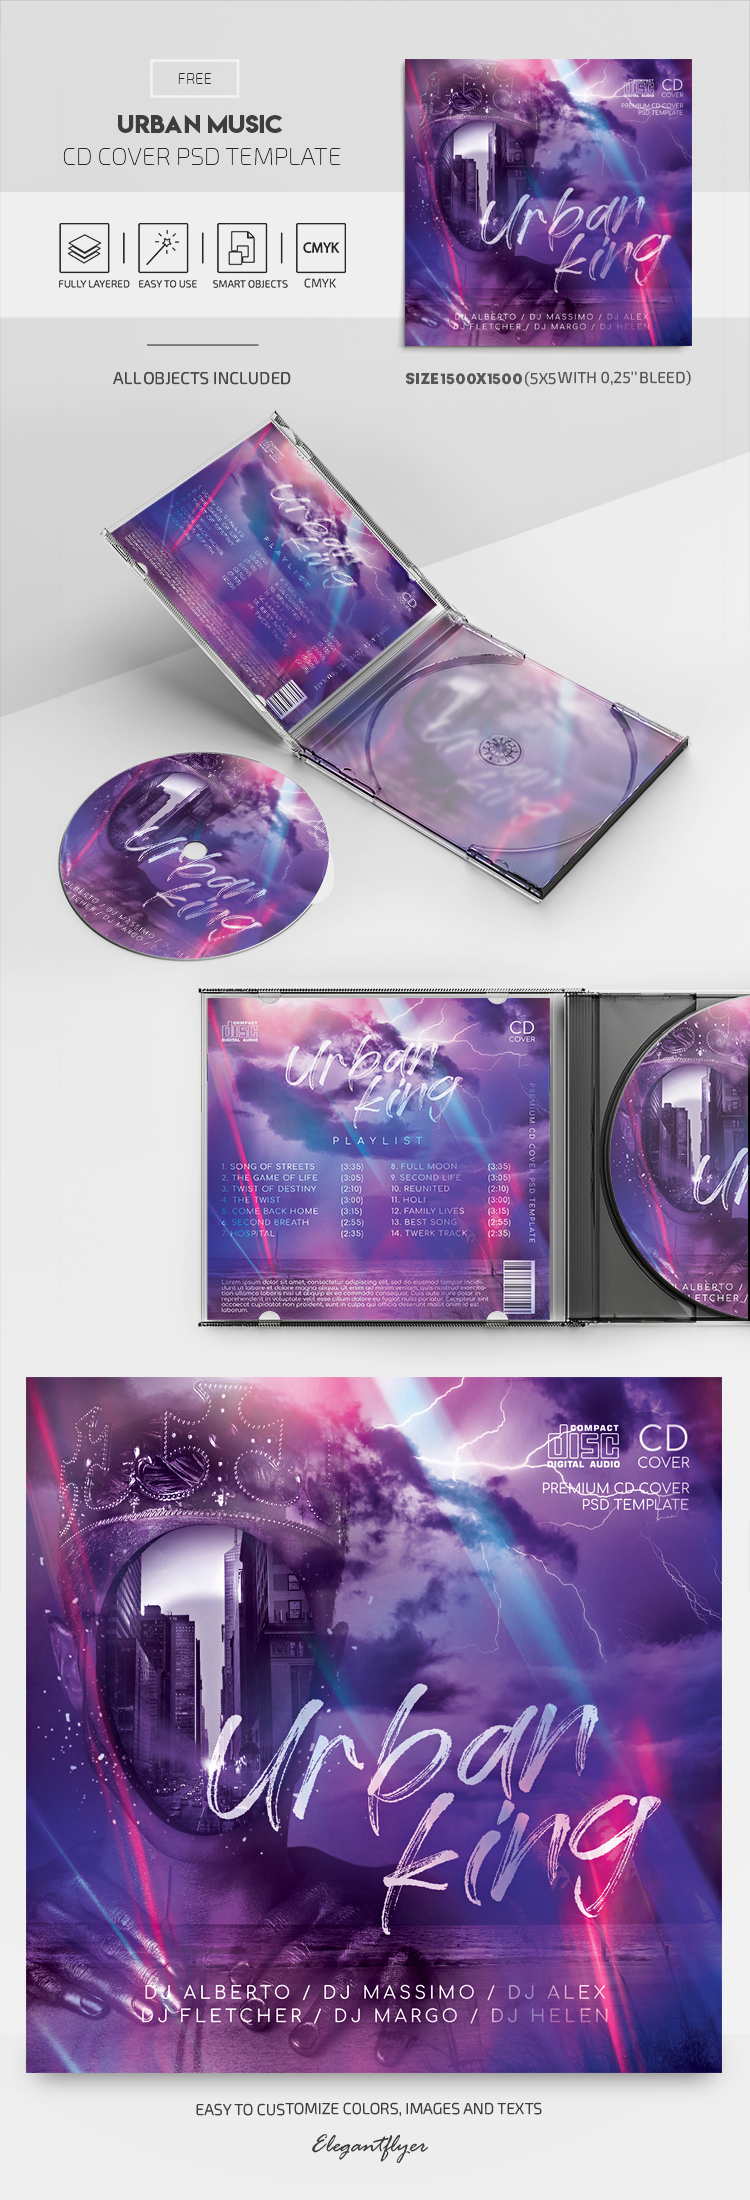 Urban Music – Free CD Cover PSD Template